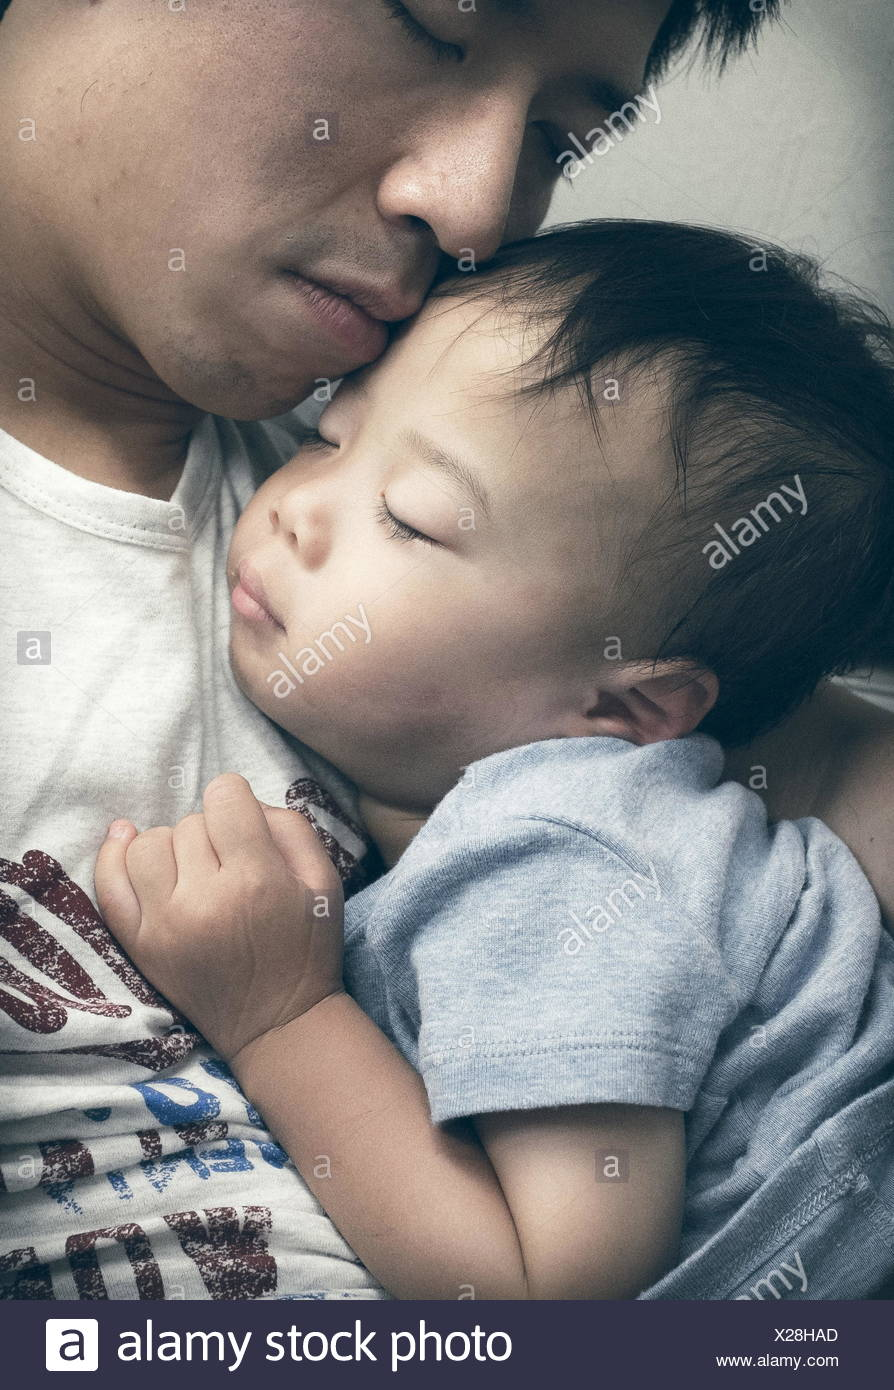 Boy sleeping in father's lap - Stock Image